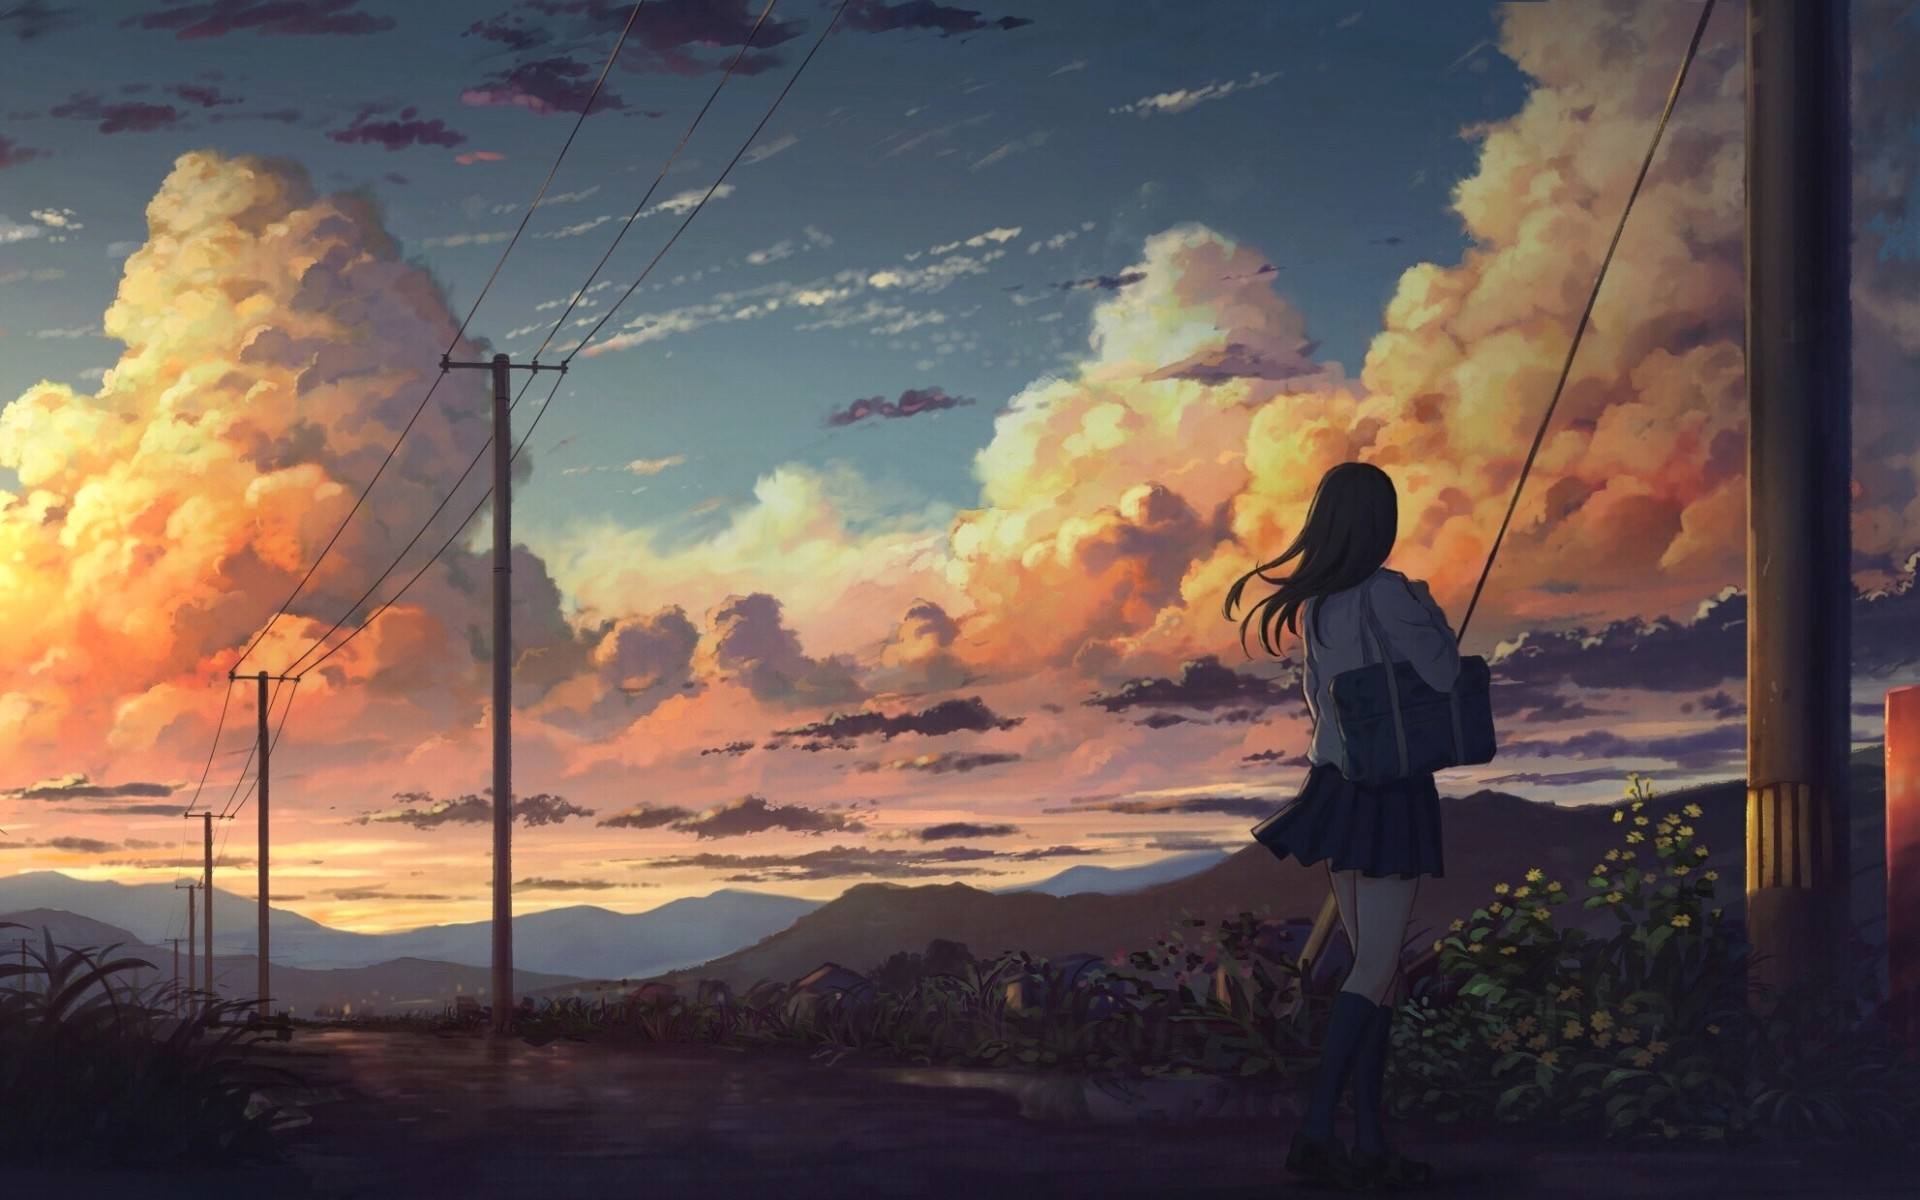 Wallpaper Anime Scenery Posted By Sarah Simpson